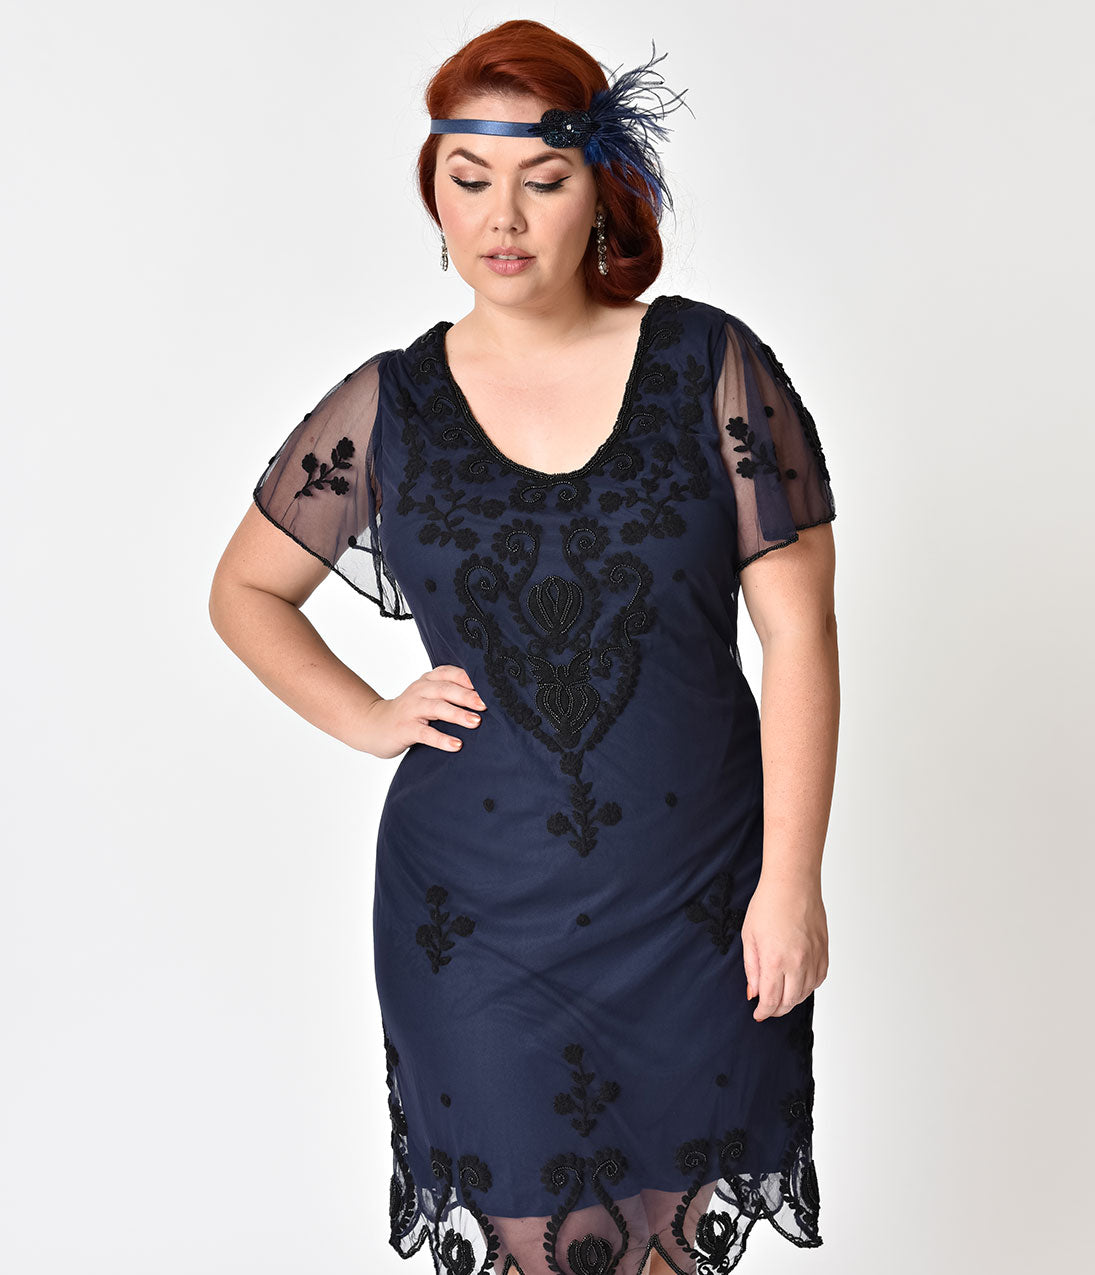 1920s Style Dresses, Flapper Dresses Plus Size Navy Blue  Black Embroidery Lillian Flapper Dress $78.00 AT vintagedancer.com